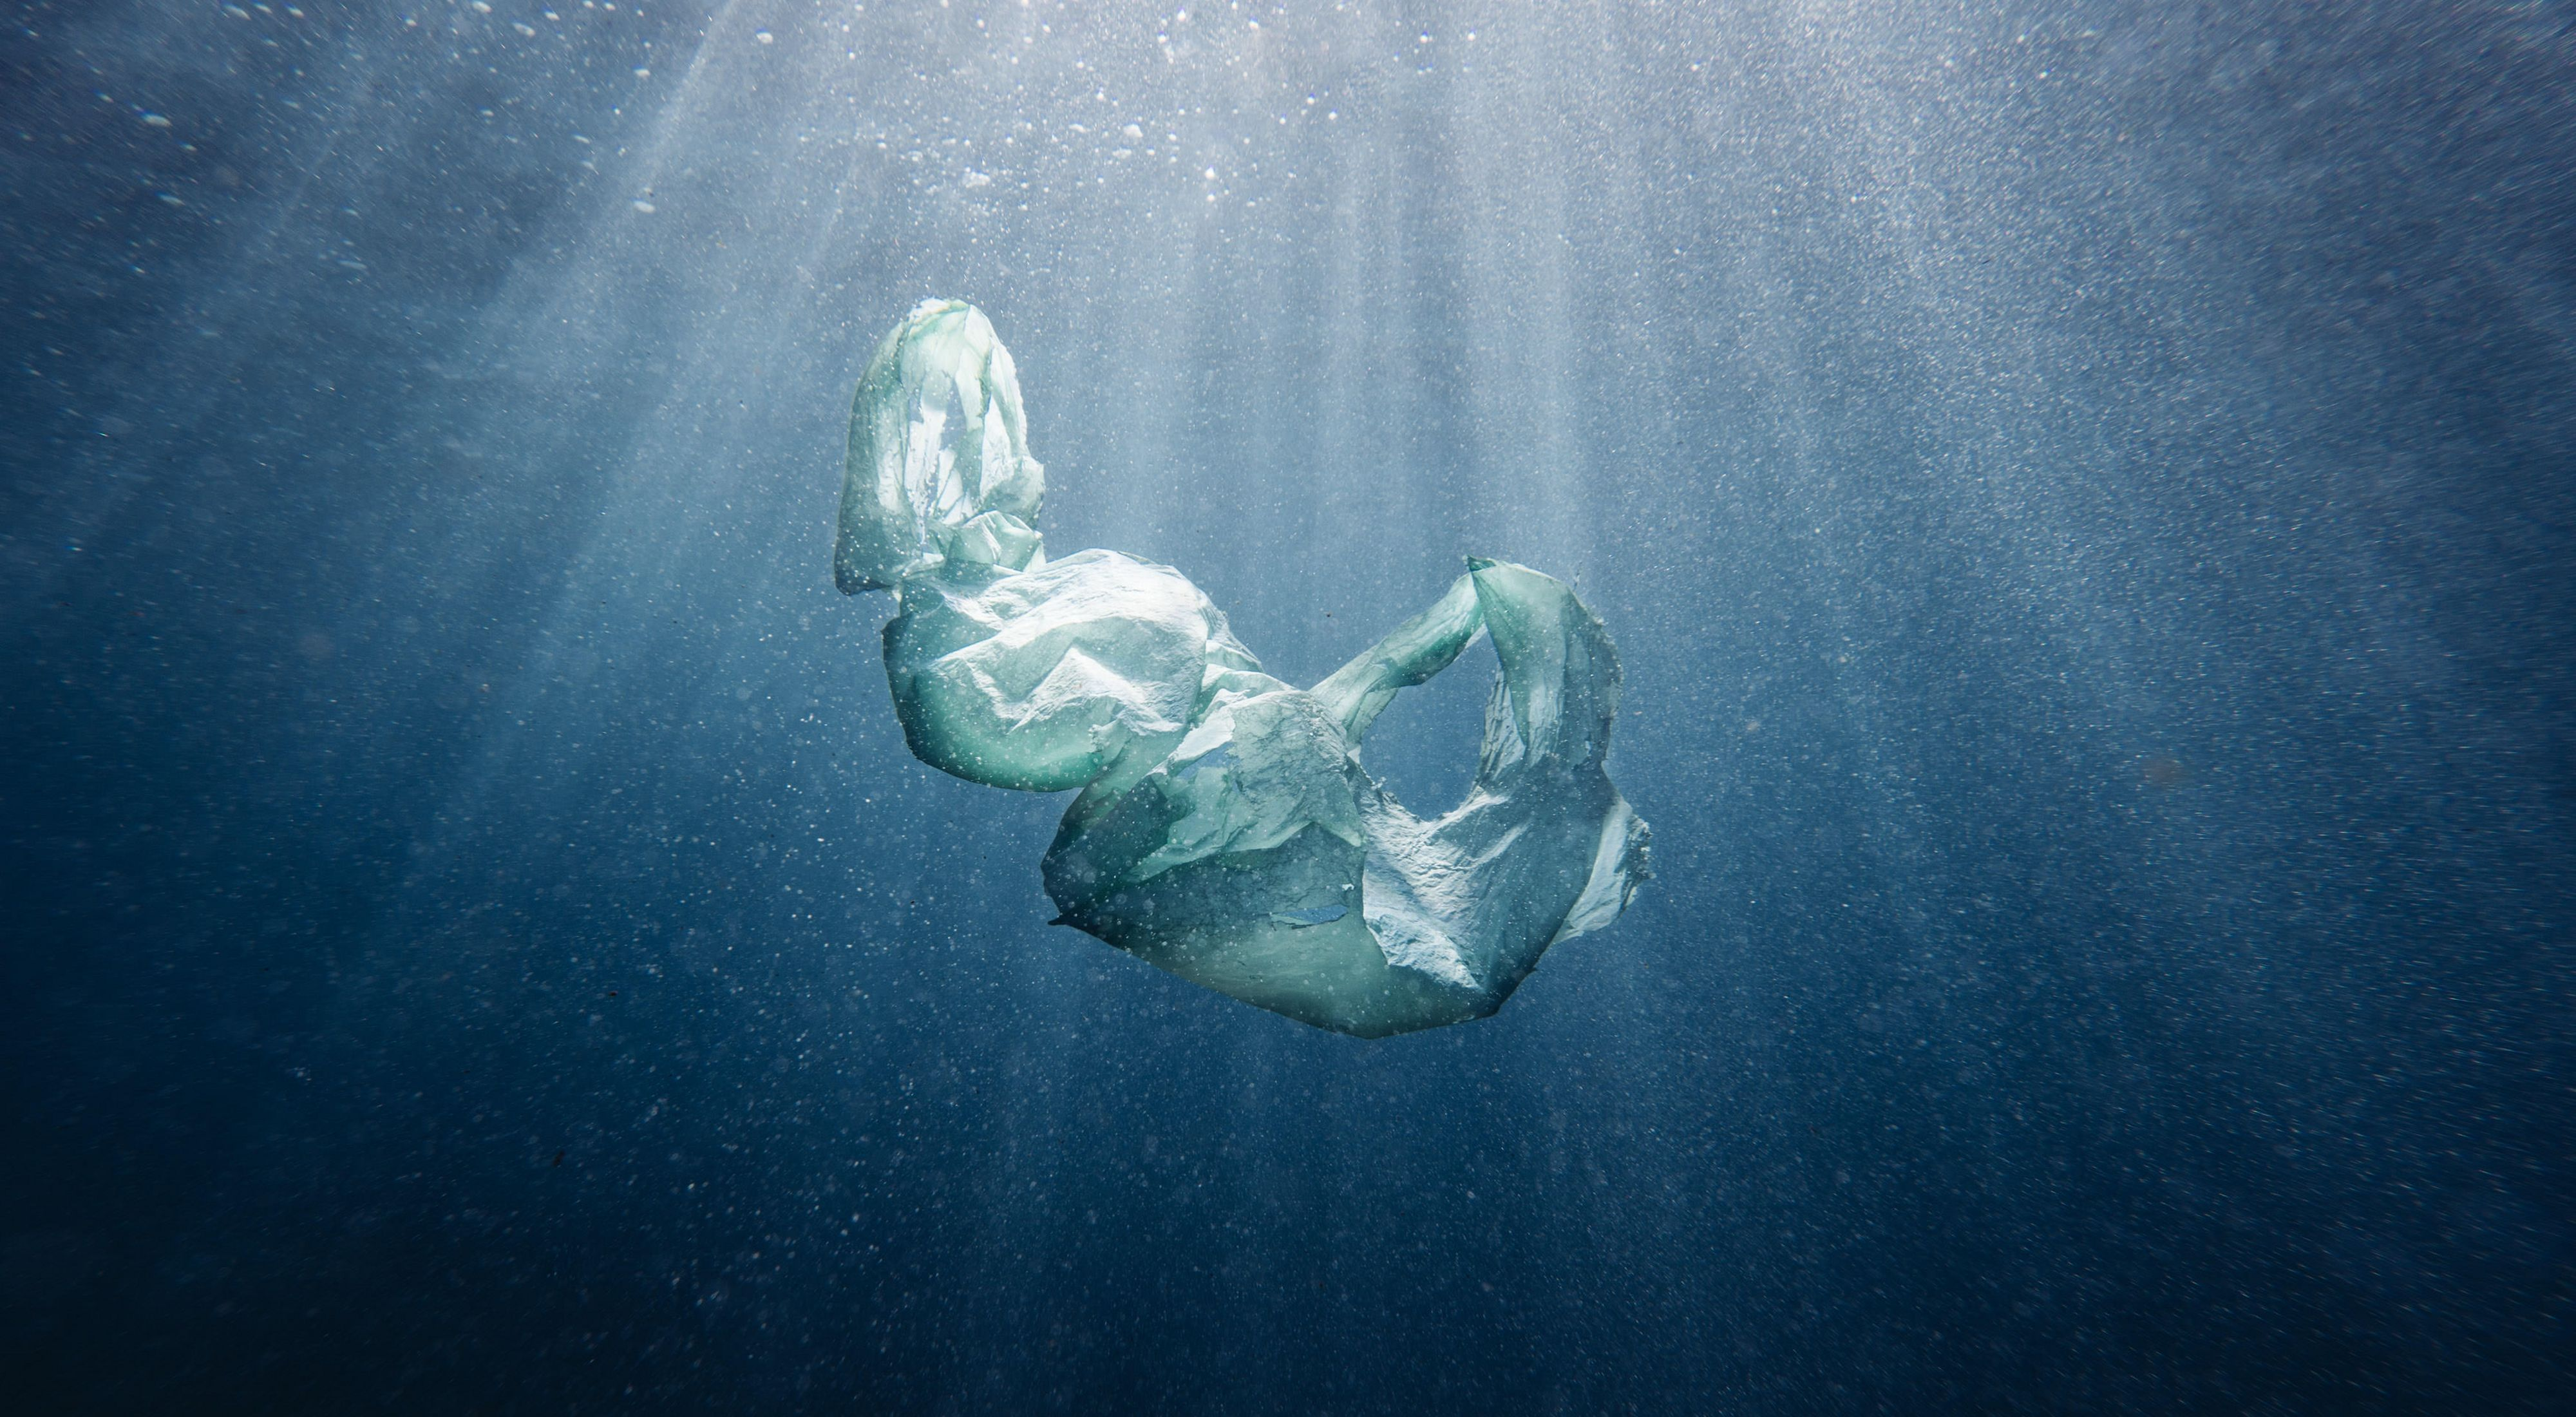 A plastic bag floats in water.